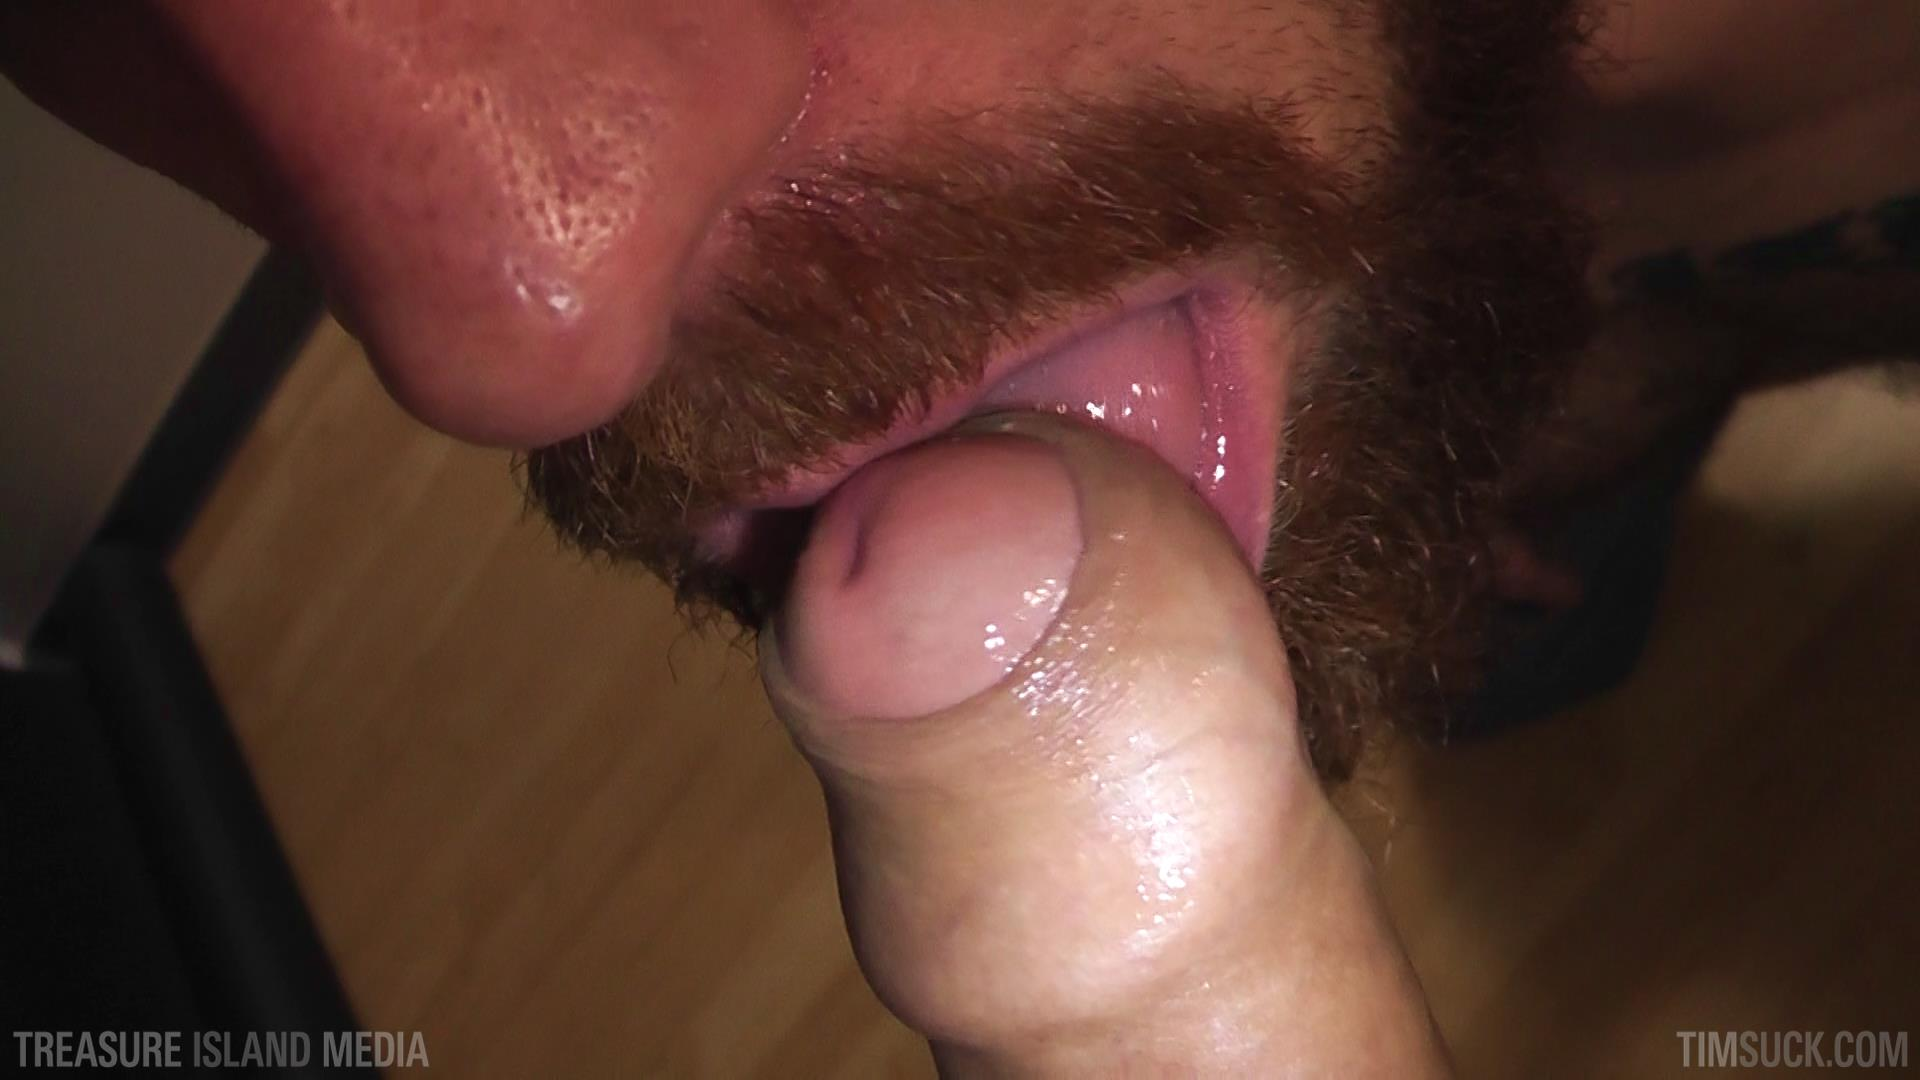 Treasure Island Media TimSuck Pete Summers and Dean Brody Sucking A Big Uncut Cock Amateur Gay Porn 37 Bearded Ginger Services A Big Uncut Cock And Eats The Cum